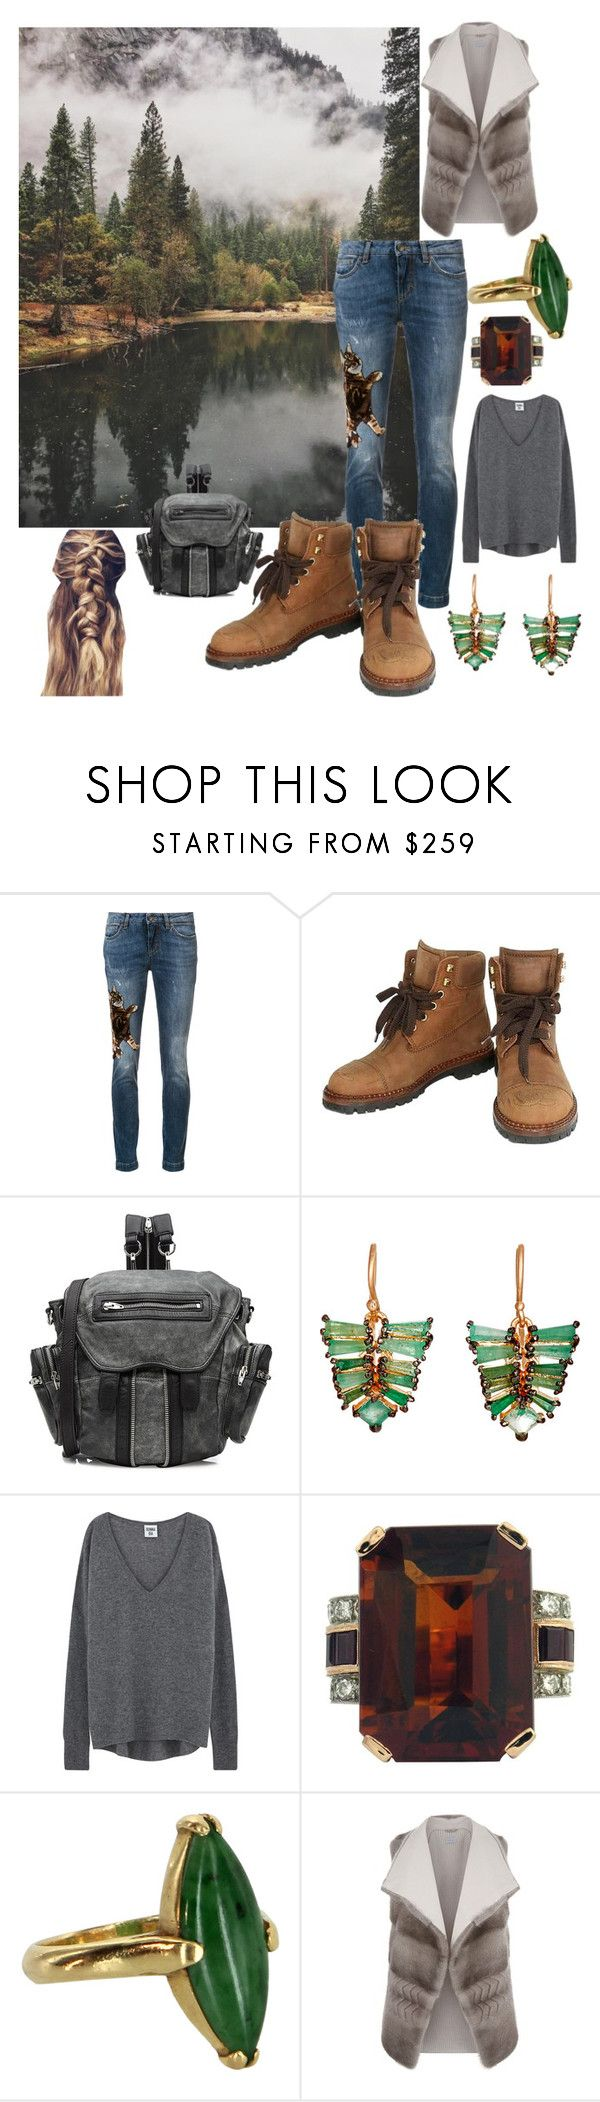 """Untitled #3"" by changinglanez ❤ liked on Polyvore featuring Dolce&Gabbana, Chanel, Alexander Wang, Nak Armstrong, Vintage and malo"